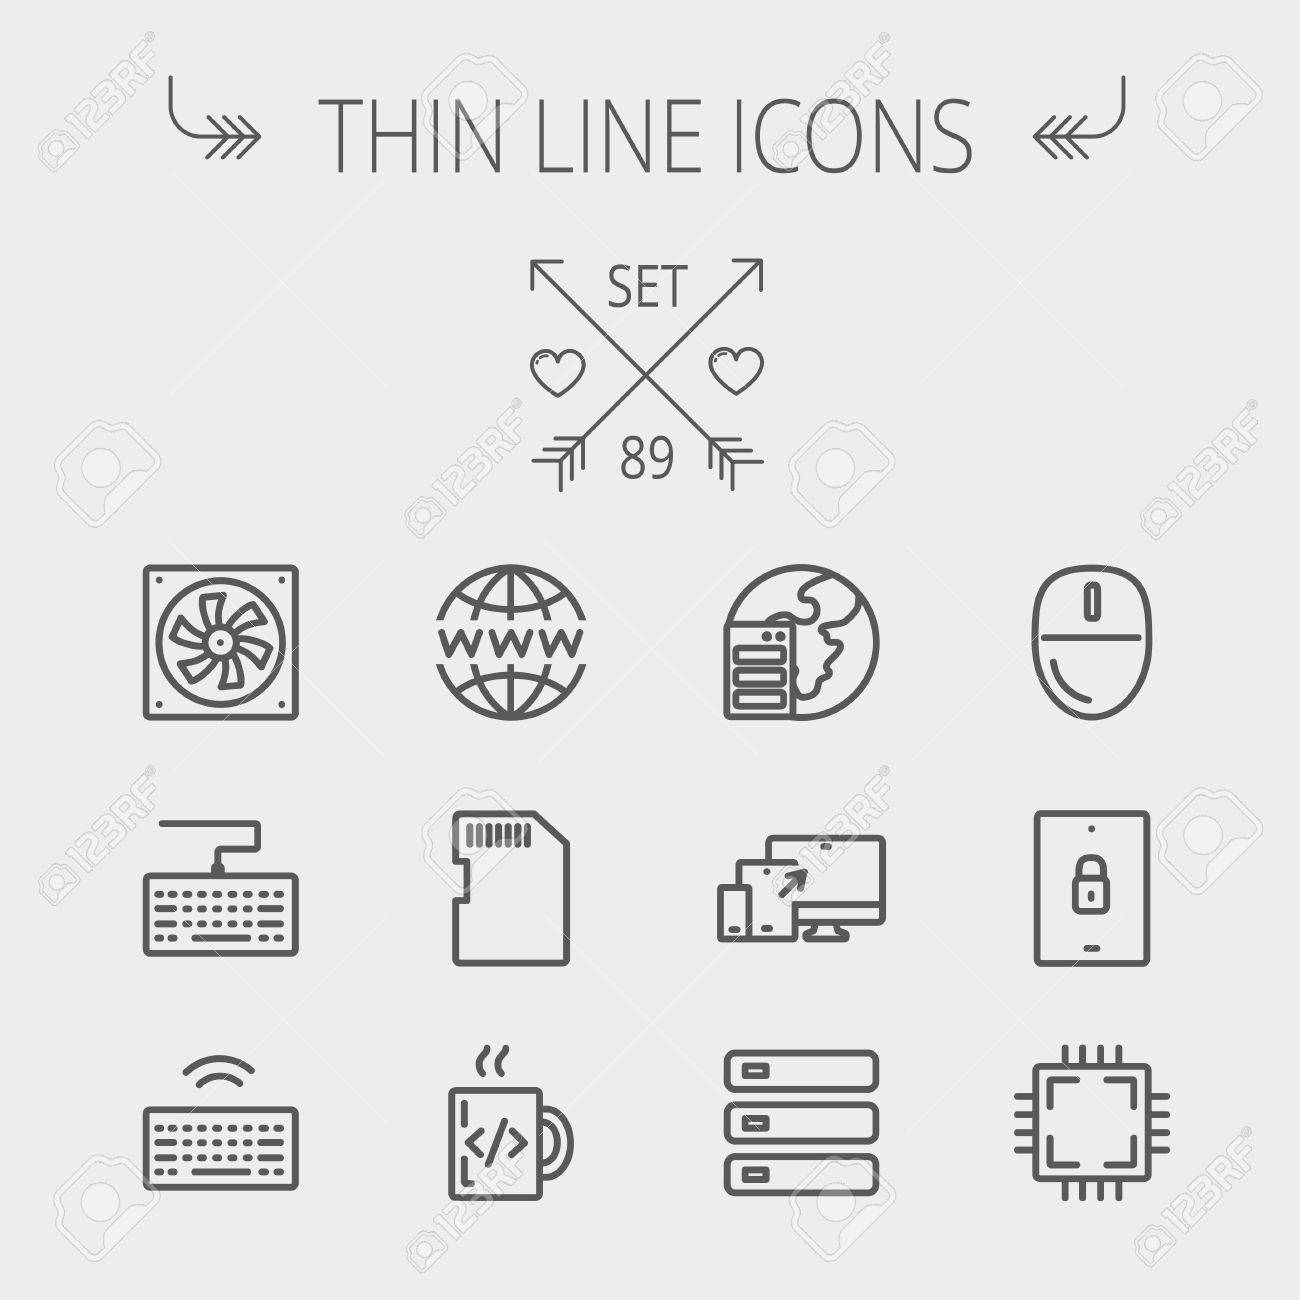 Technology Thin Line Icon Set For Web And Mobile Includes Smart Phone Circuit Board With Details Like Sim Card Other Image Simcard Computer